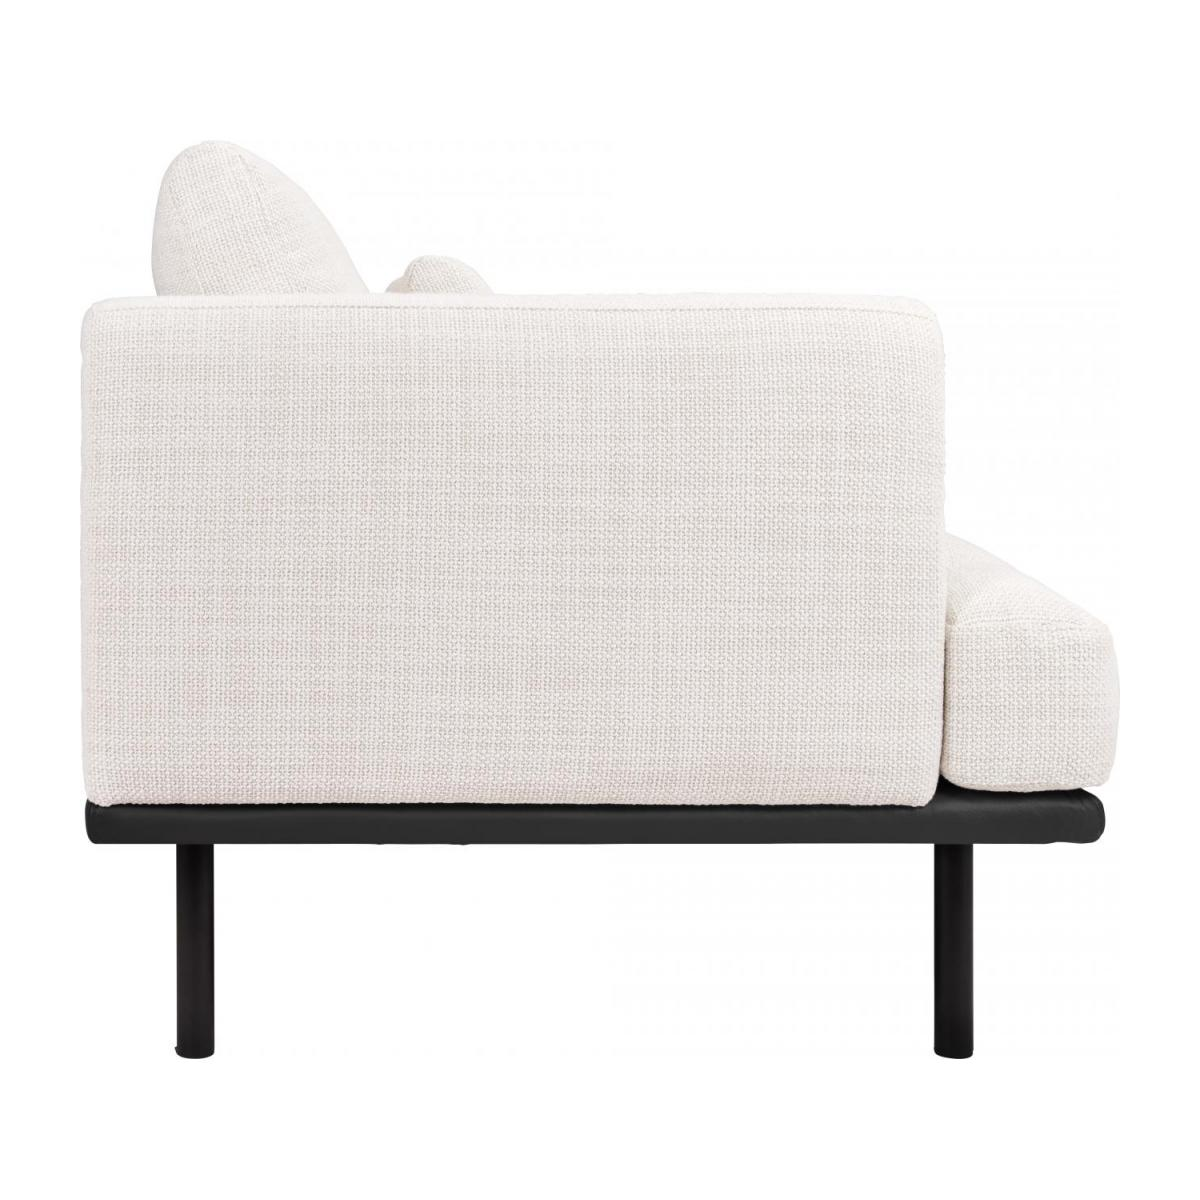 2 seater sofa in Fasoli fabric, snow white with base in black leather n°4